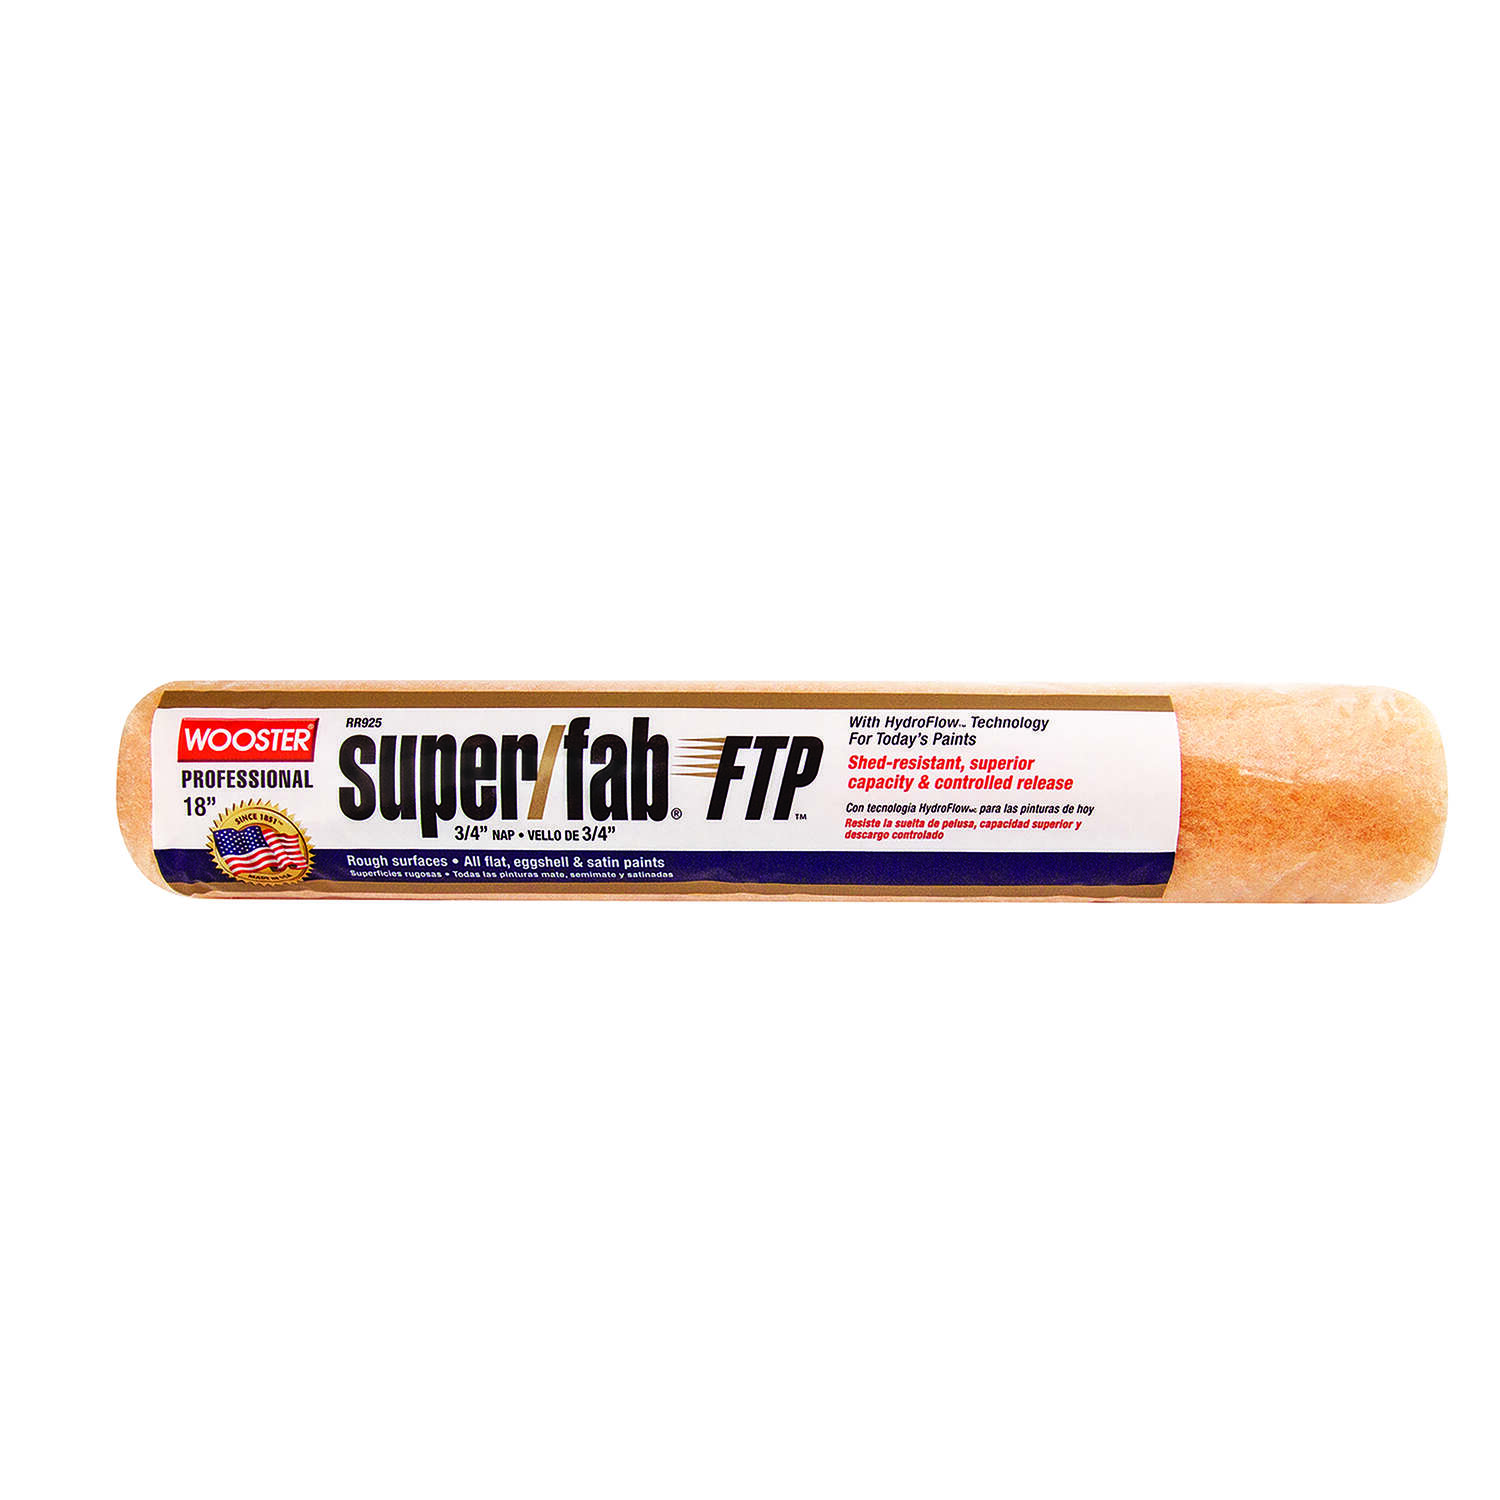 Wooster Super/Fab FTP Synthetic Blend 18 in. W x 3/4 in. Regular Paint Roller Cover